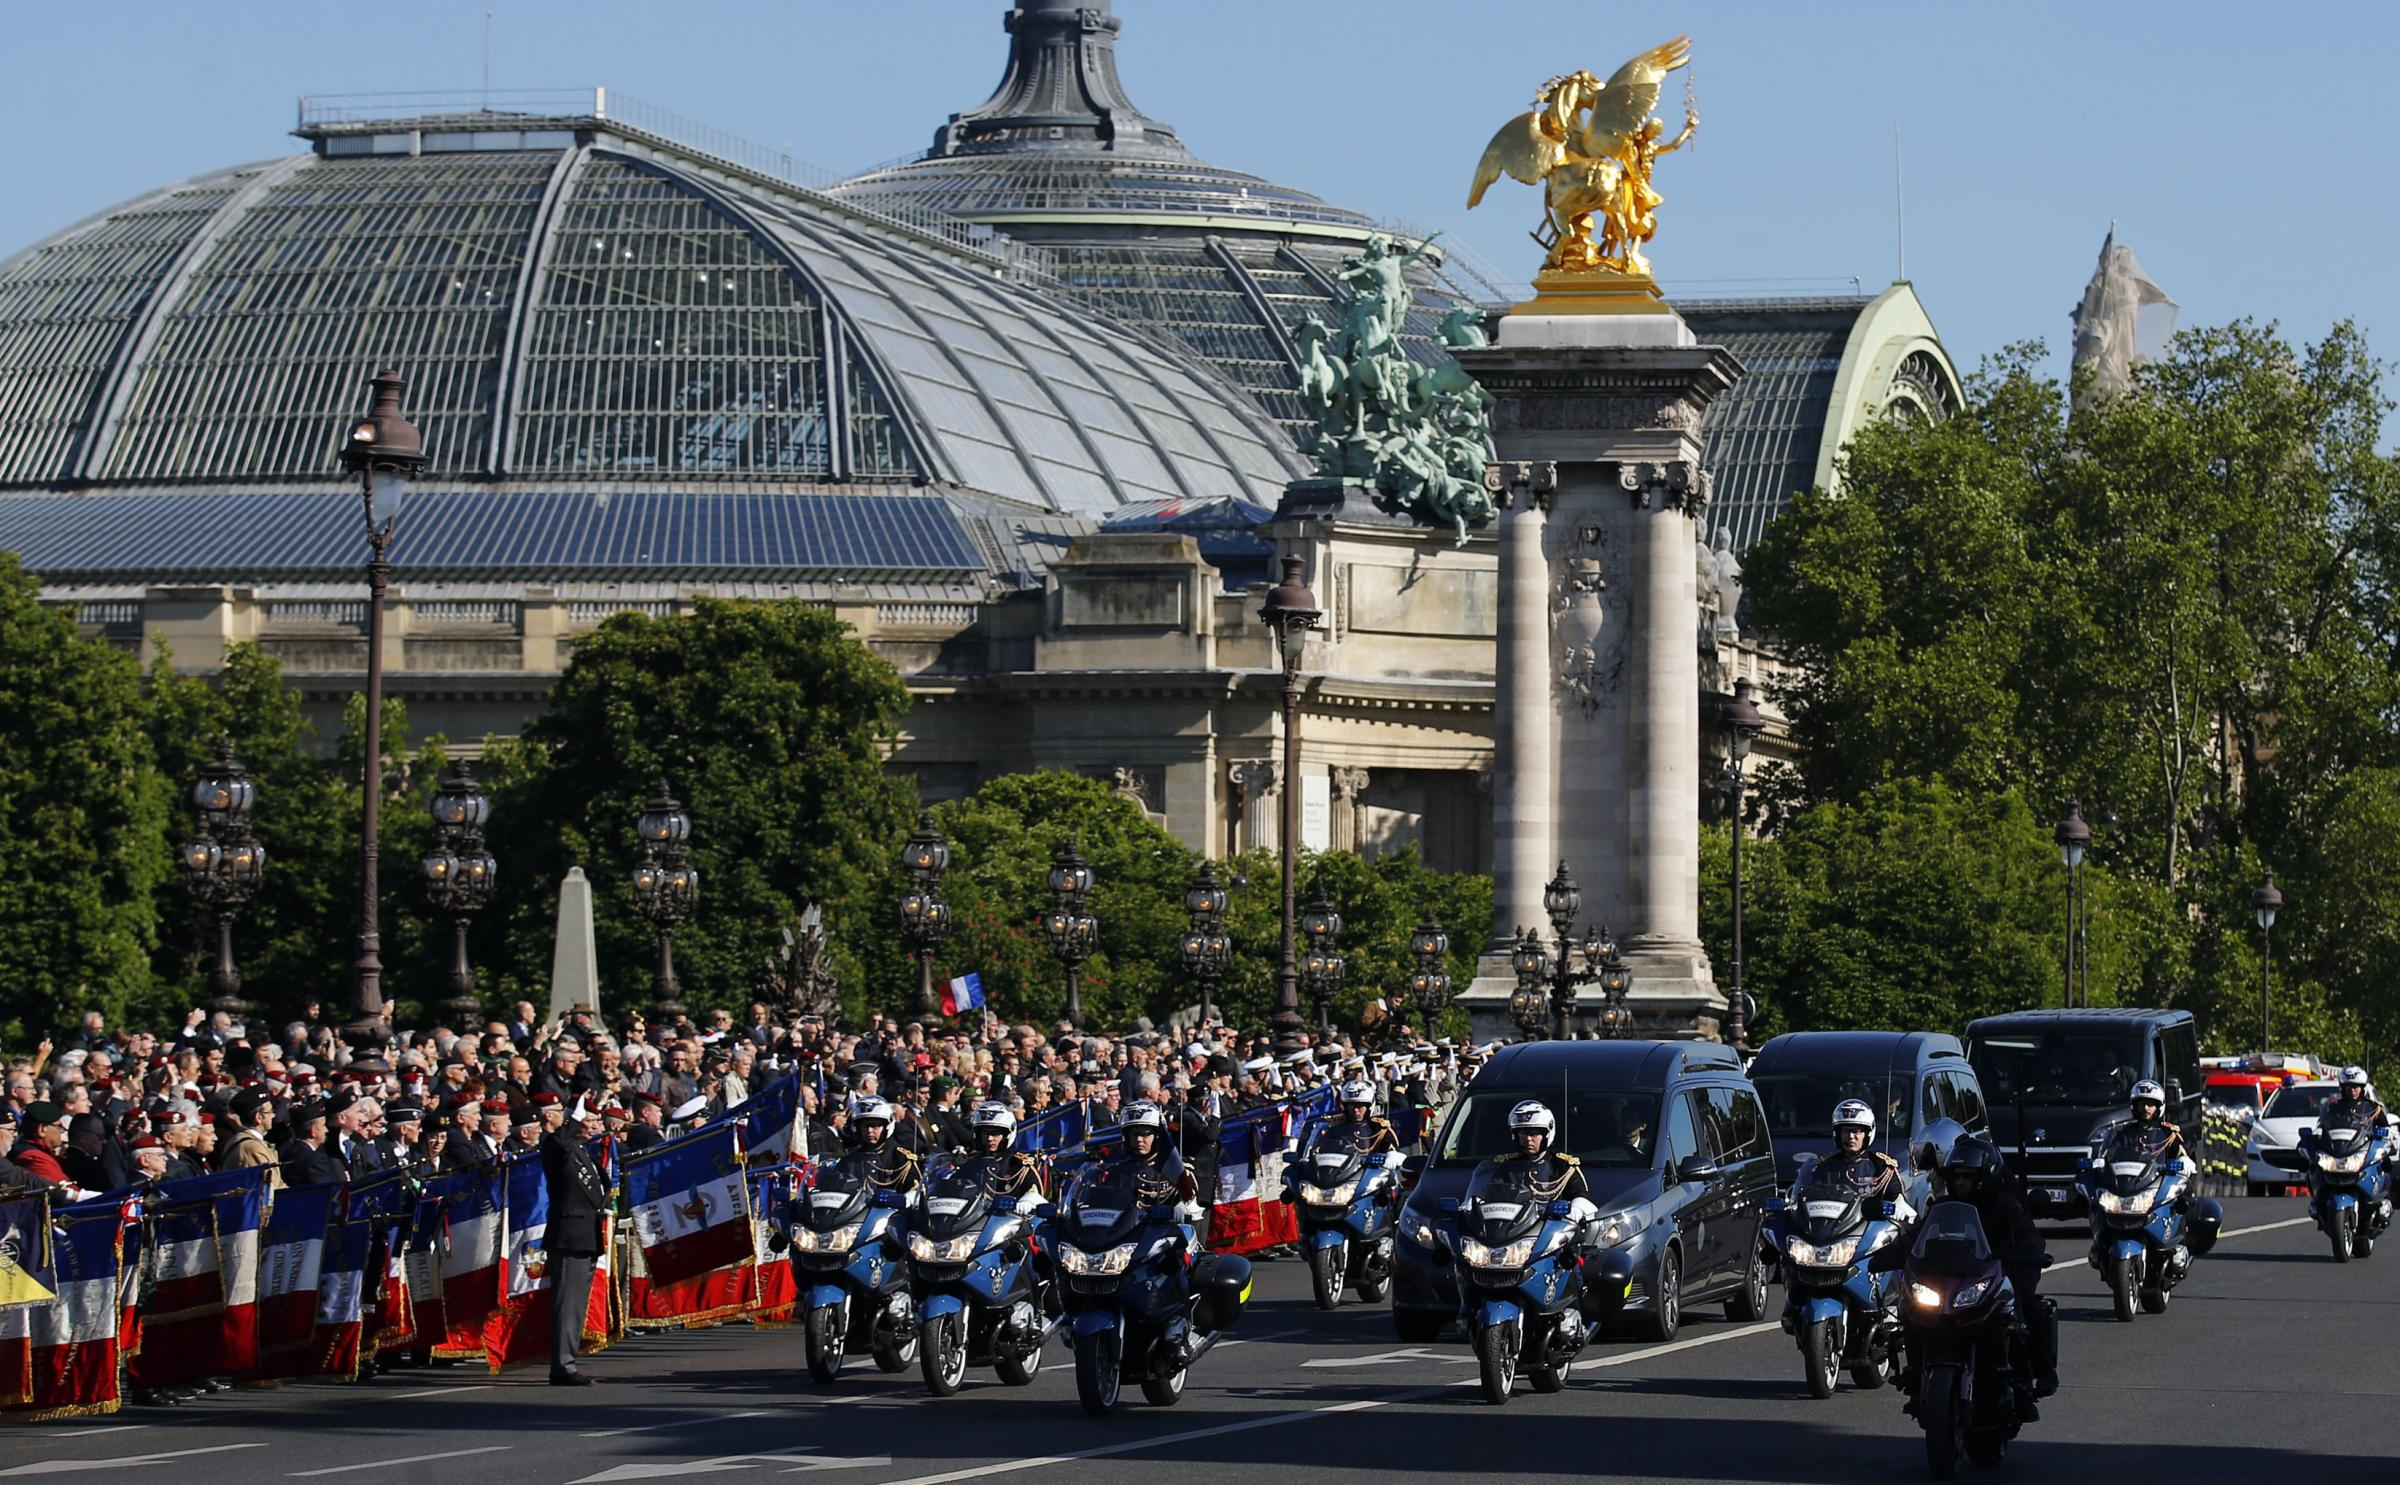 Crowds lined the Alexander III Bridge in Paris as the funeral cortege carrying the coffins of the two Marine commandos drove past